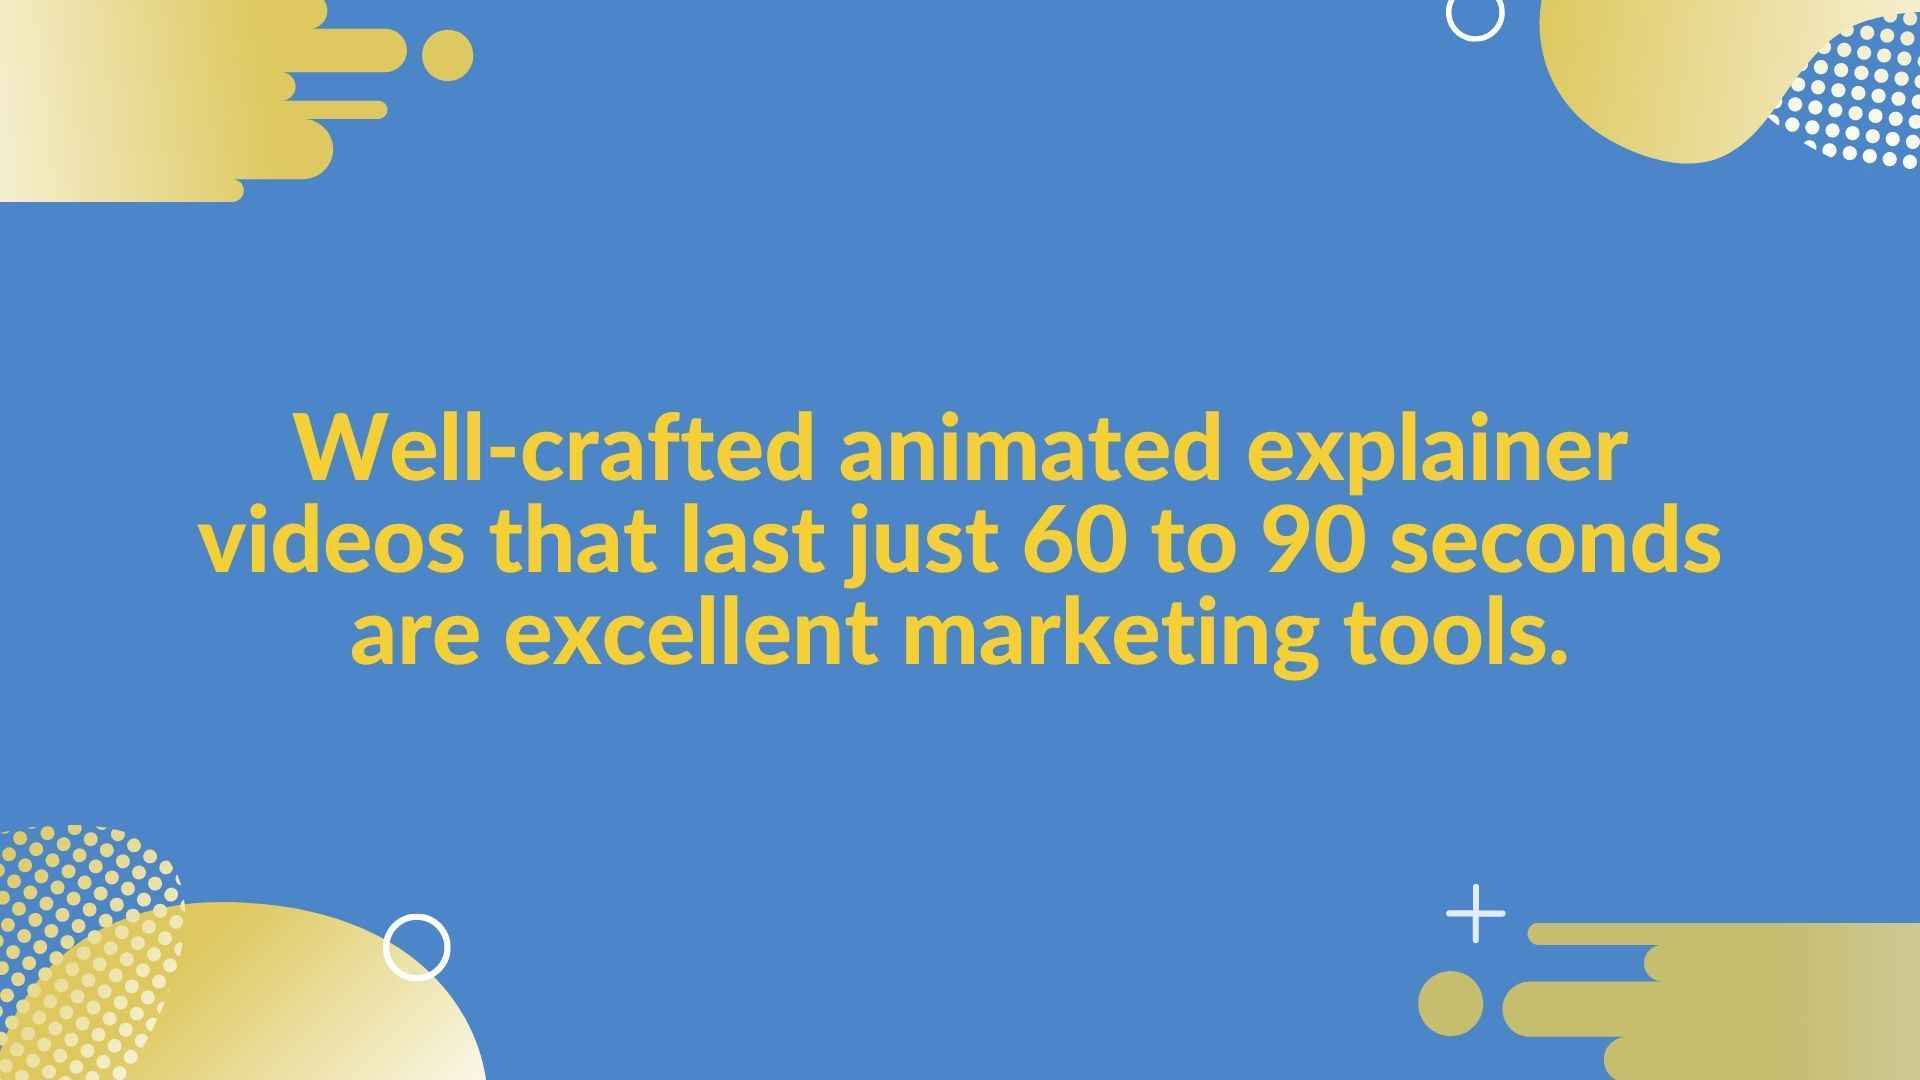 Short animated videos are a great marketing tool